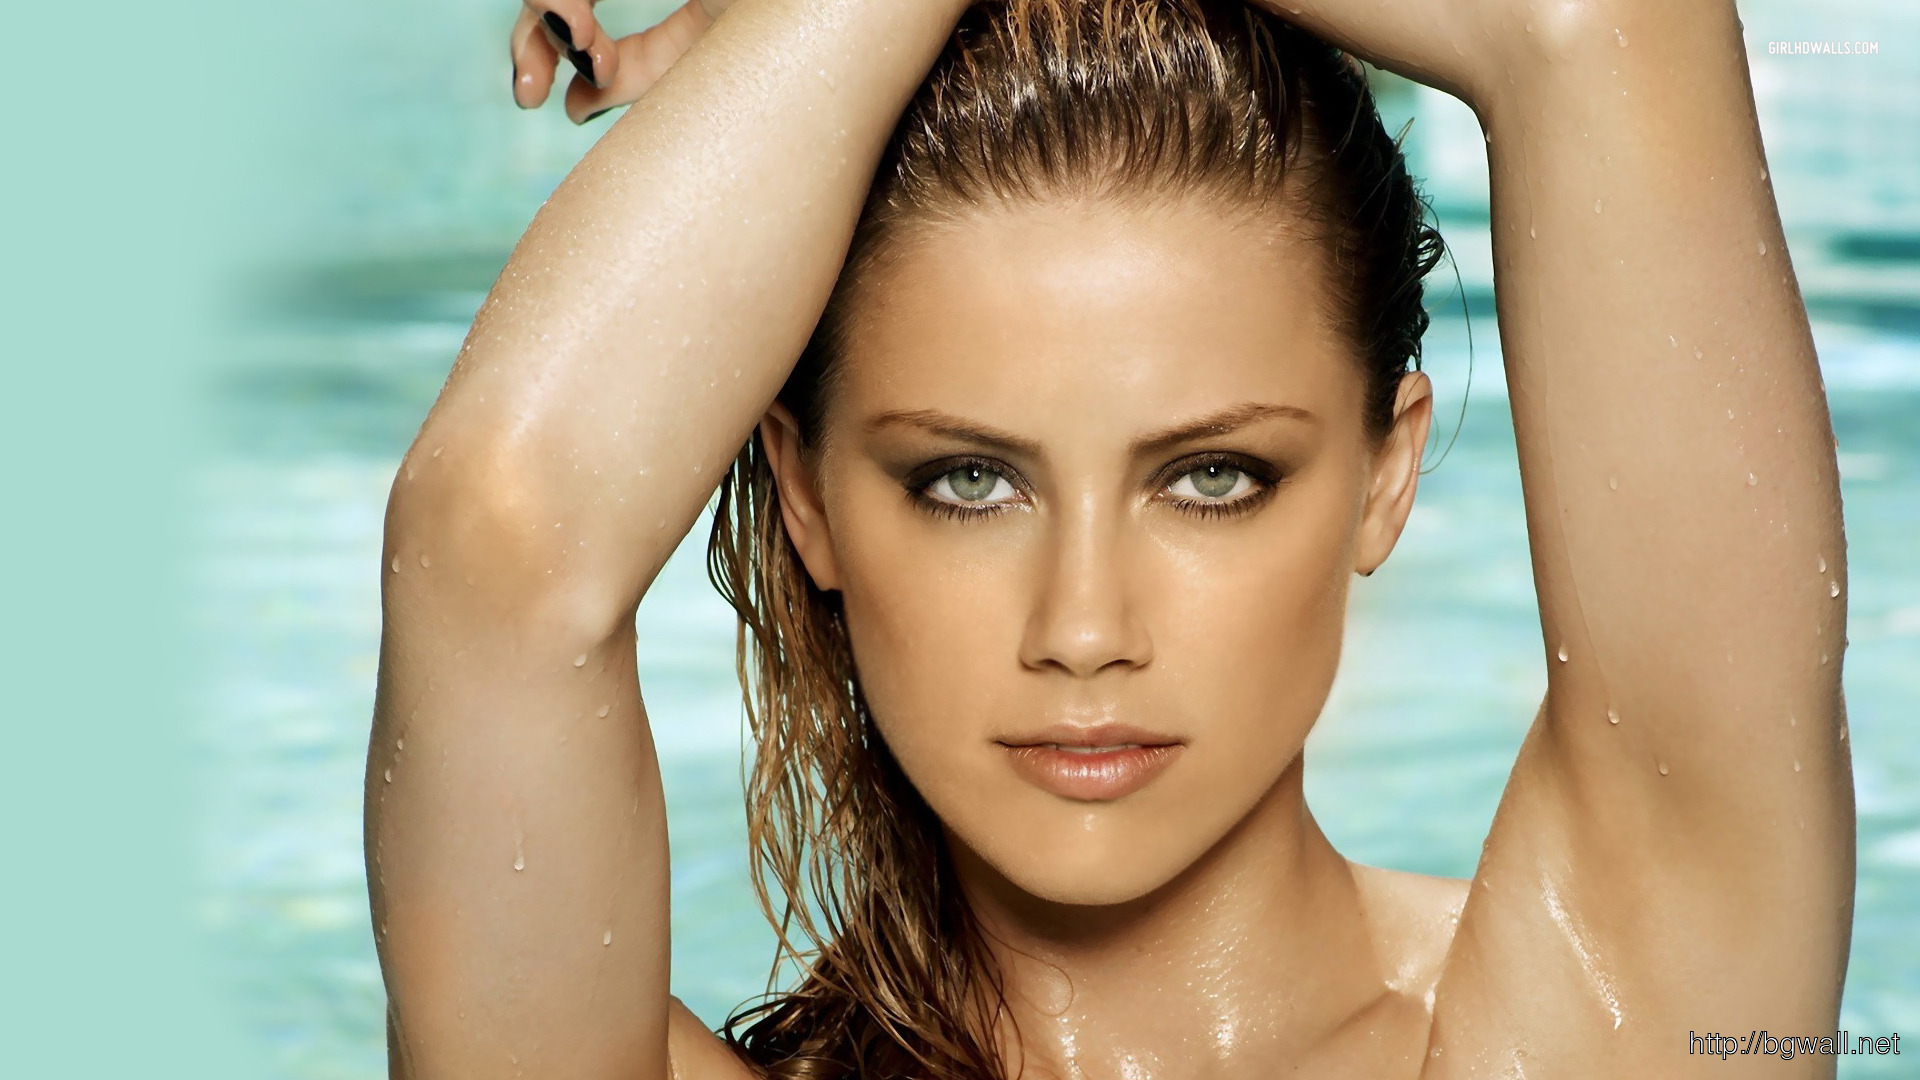 Amber Heard 1920x1080 Wallpaper